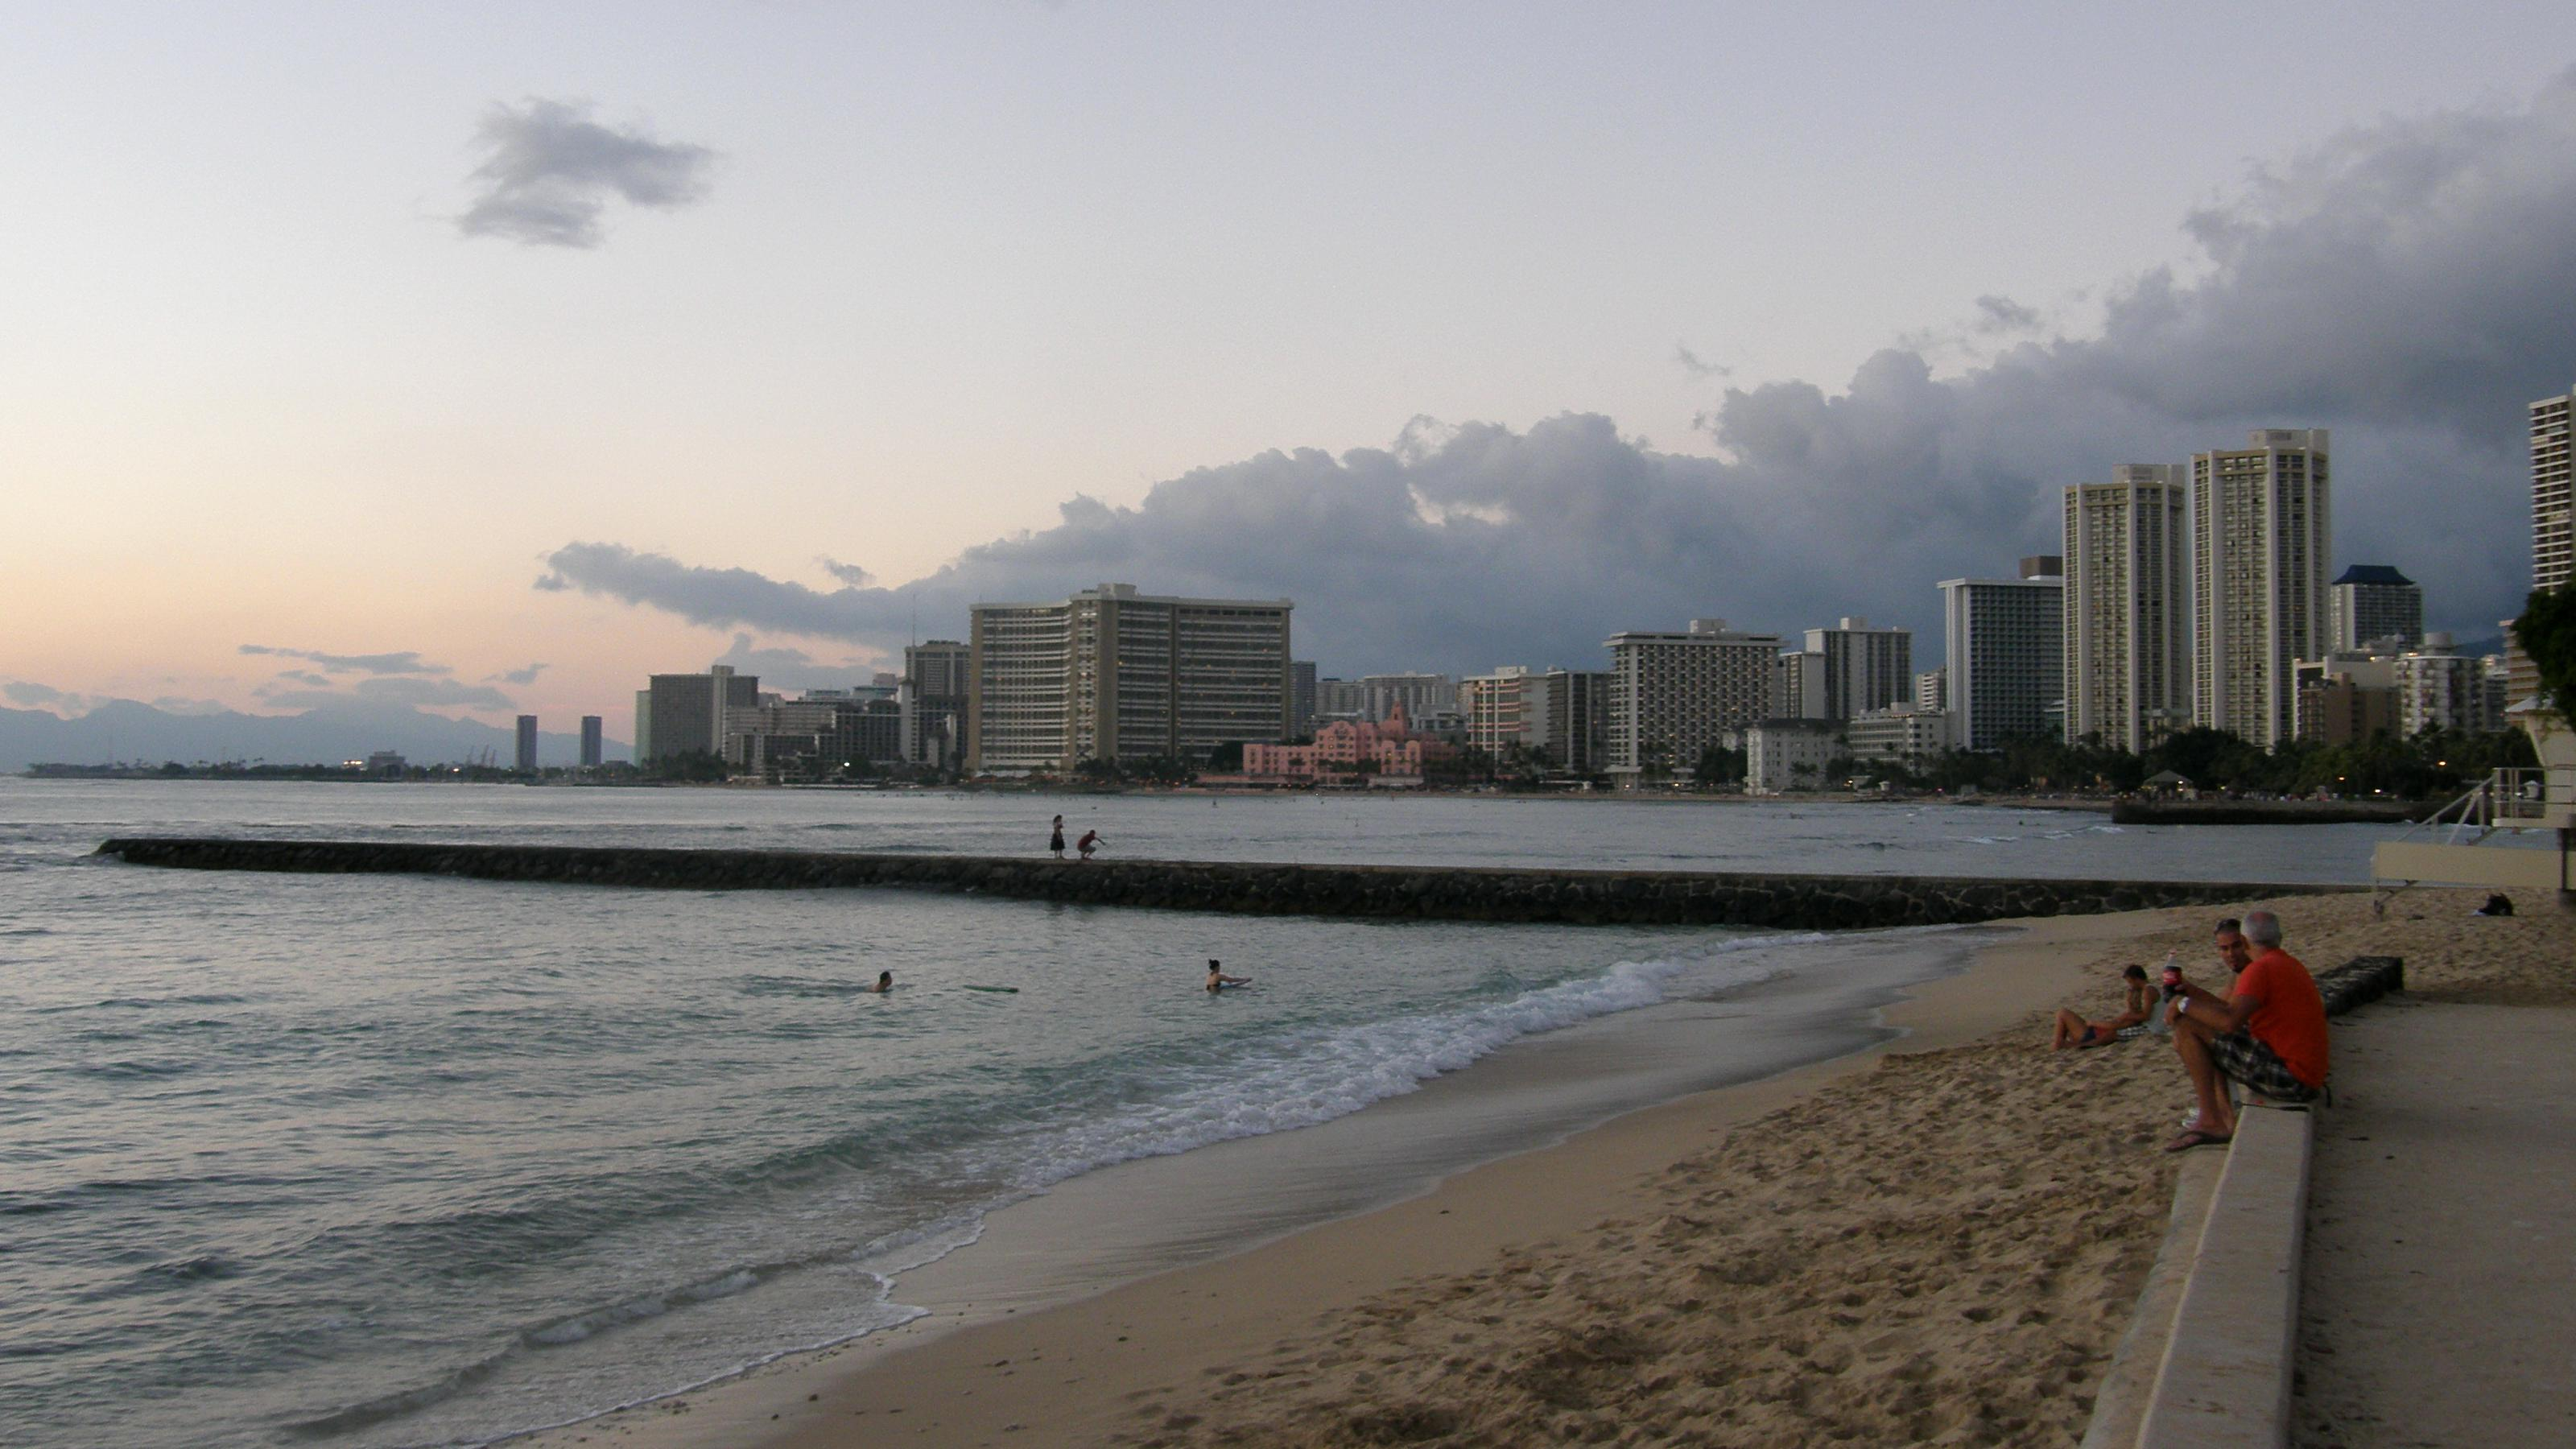 """Oahu South Shore<br/>Photo <a href=""""//creativecommons.org/licences/by-nc-sa/3.0/"""" class=""""cc-small"""" target=""""_blank""""><img typeof=""""foaf:Image"""" class=""""image-style-none"""" src=""""https://i.creativecommons.org/l/by-nc-sa/3.0/80x15.png"""" width=""""80px"""" height=""""15px"""" alt=""""Creative Commons Licence"""" /></a> <a href=""""https://www.flickr.com/photos/71453924@N00/5293047042"""">Nemo&#039;s Great Uncle</a>"""